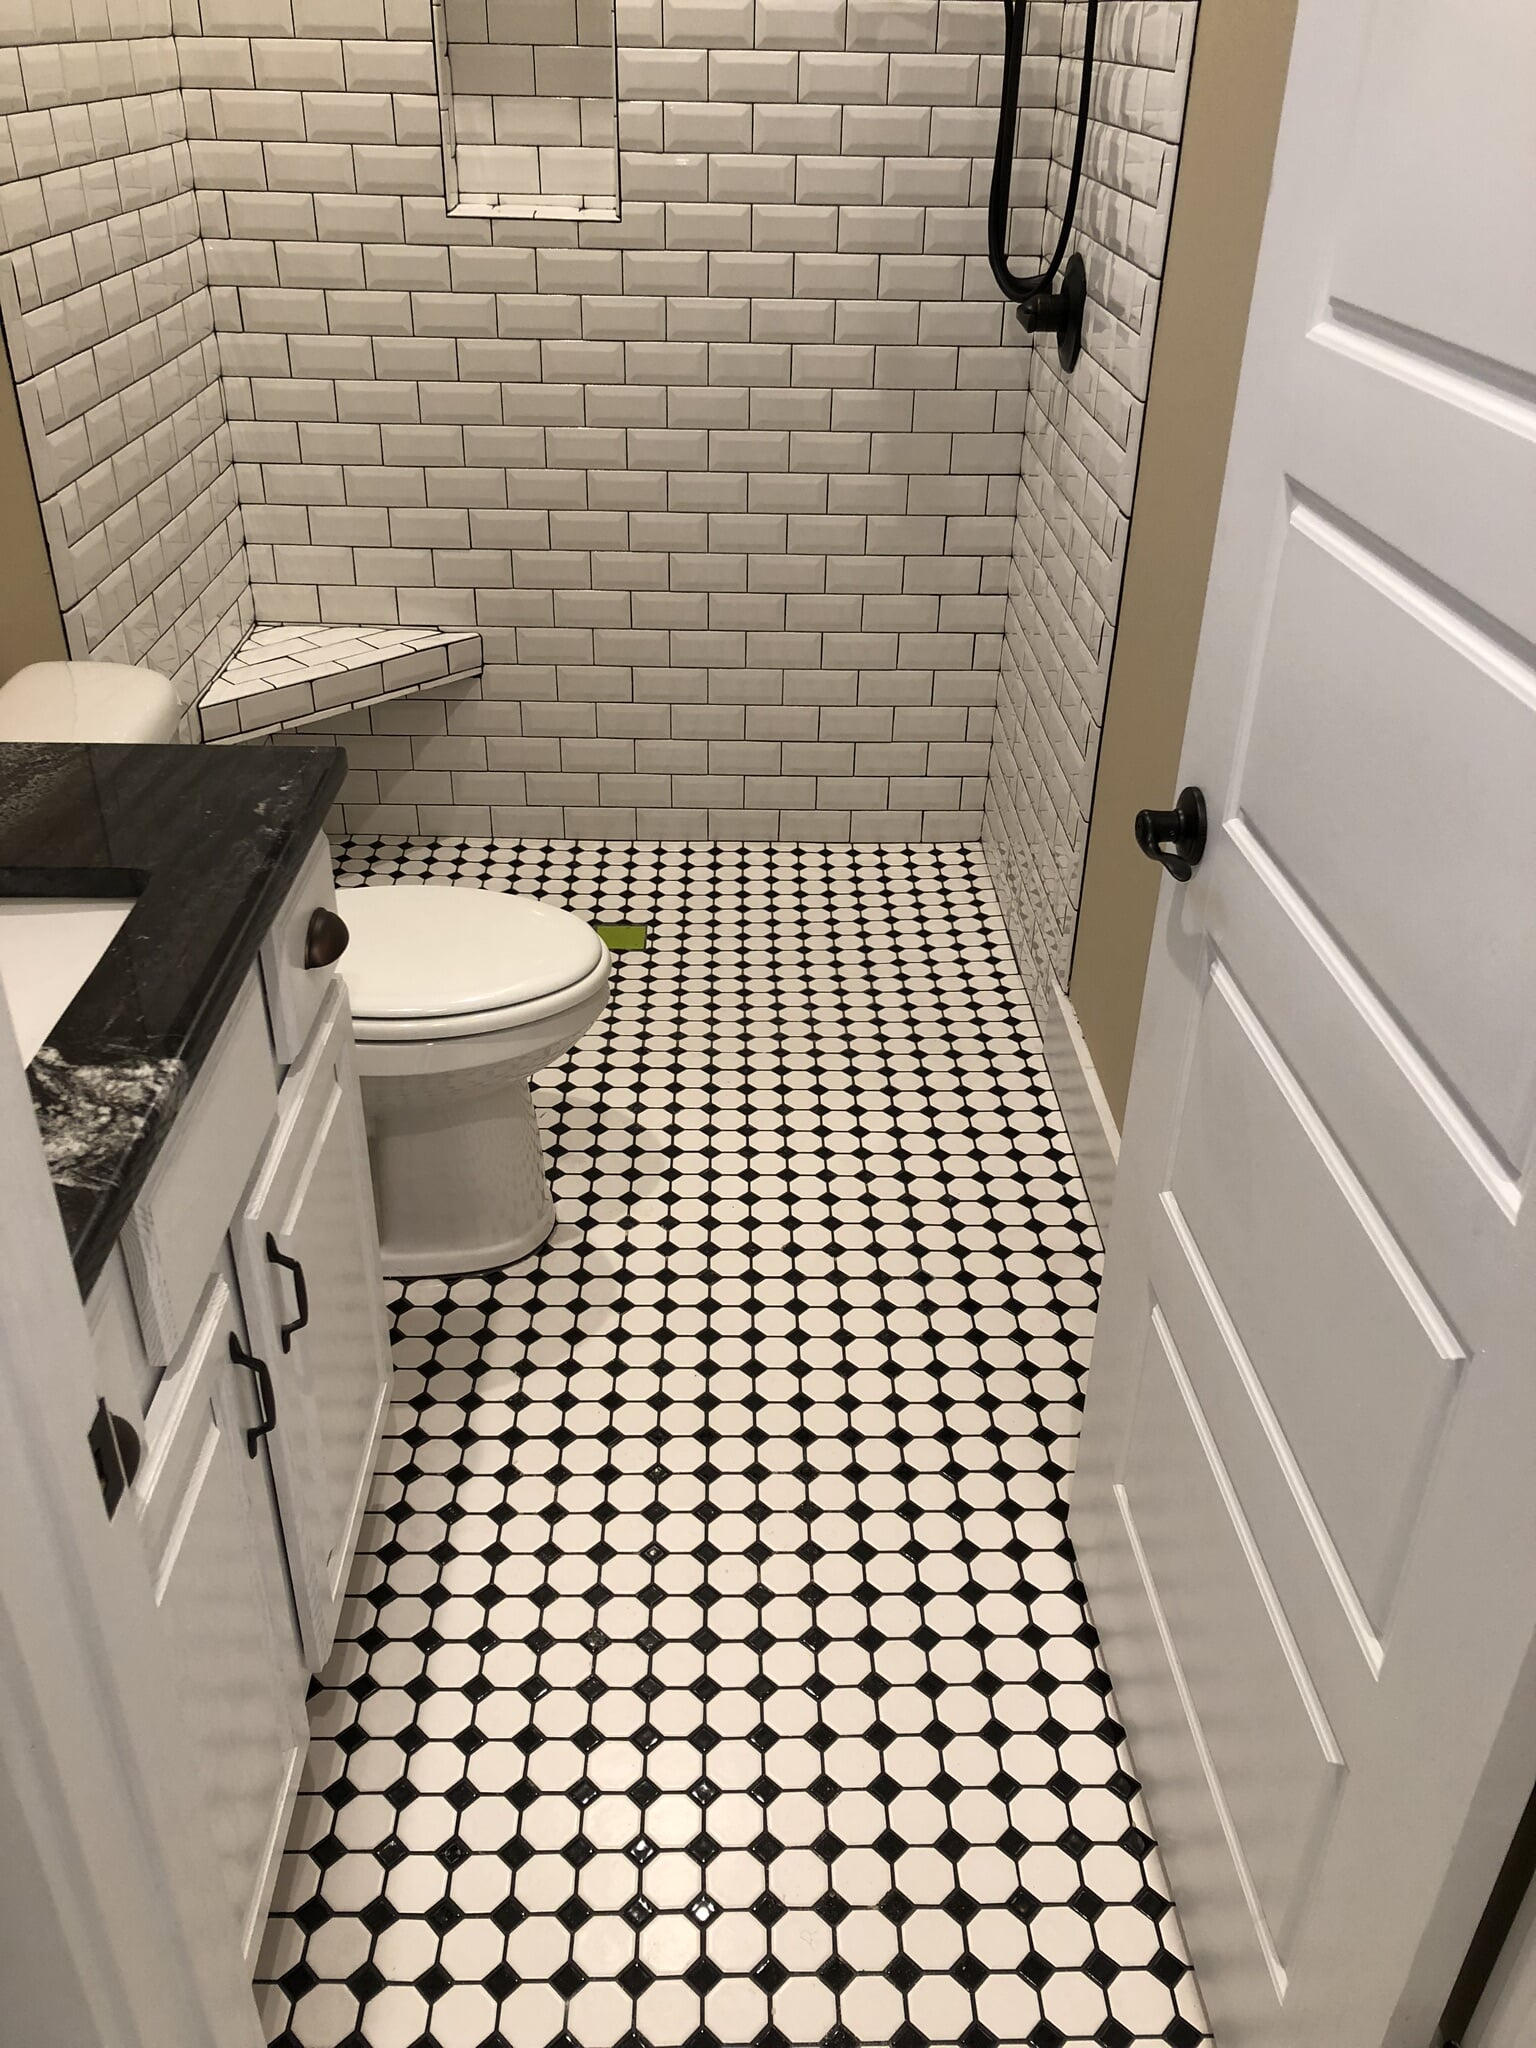 Black and white floor tiles in Foley, AL from G & J Tile & Floor Covering